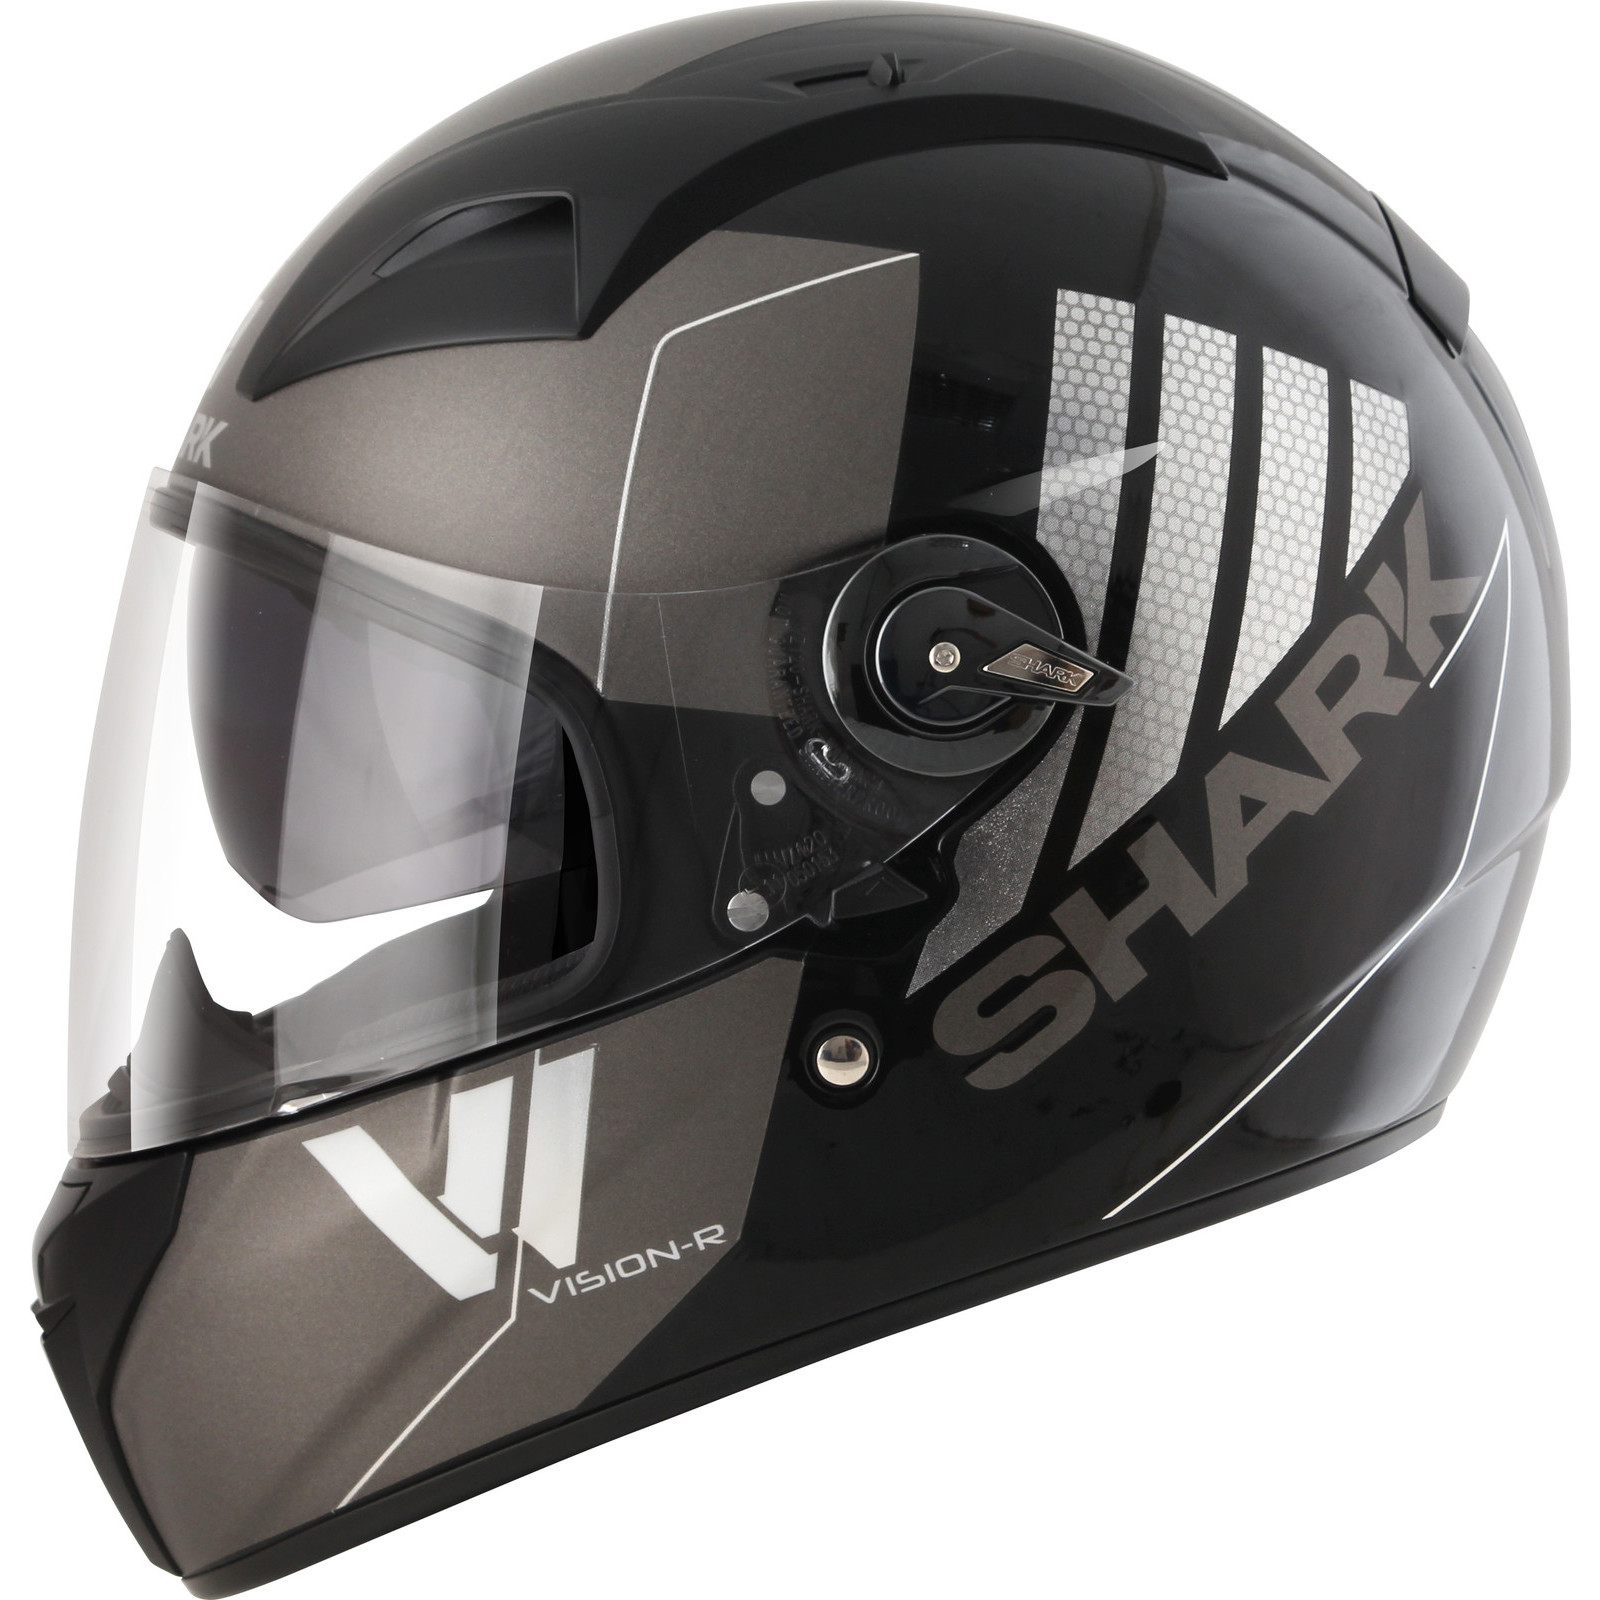 shark vision r series 2 cartney motorbike bike integral full face helmet visor ebay. Black Bedroom Furniture Sets. Home Design Ideas